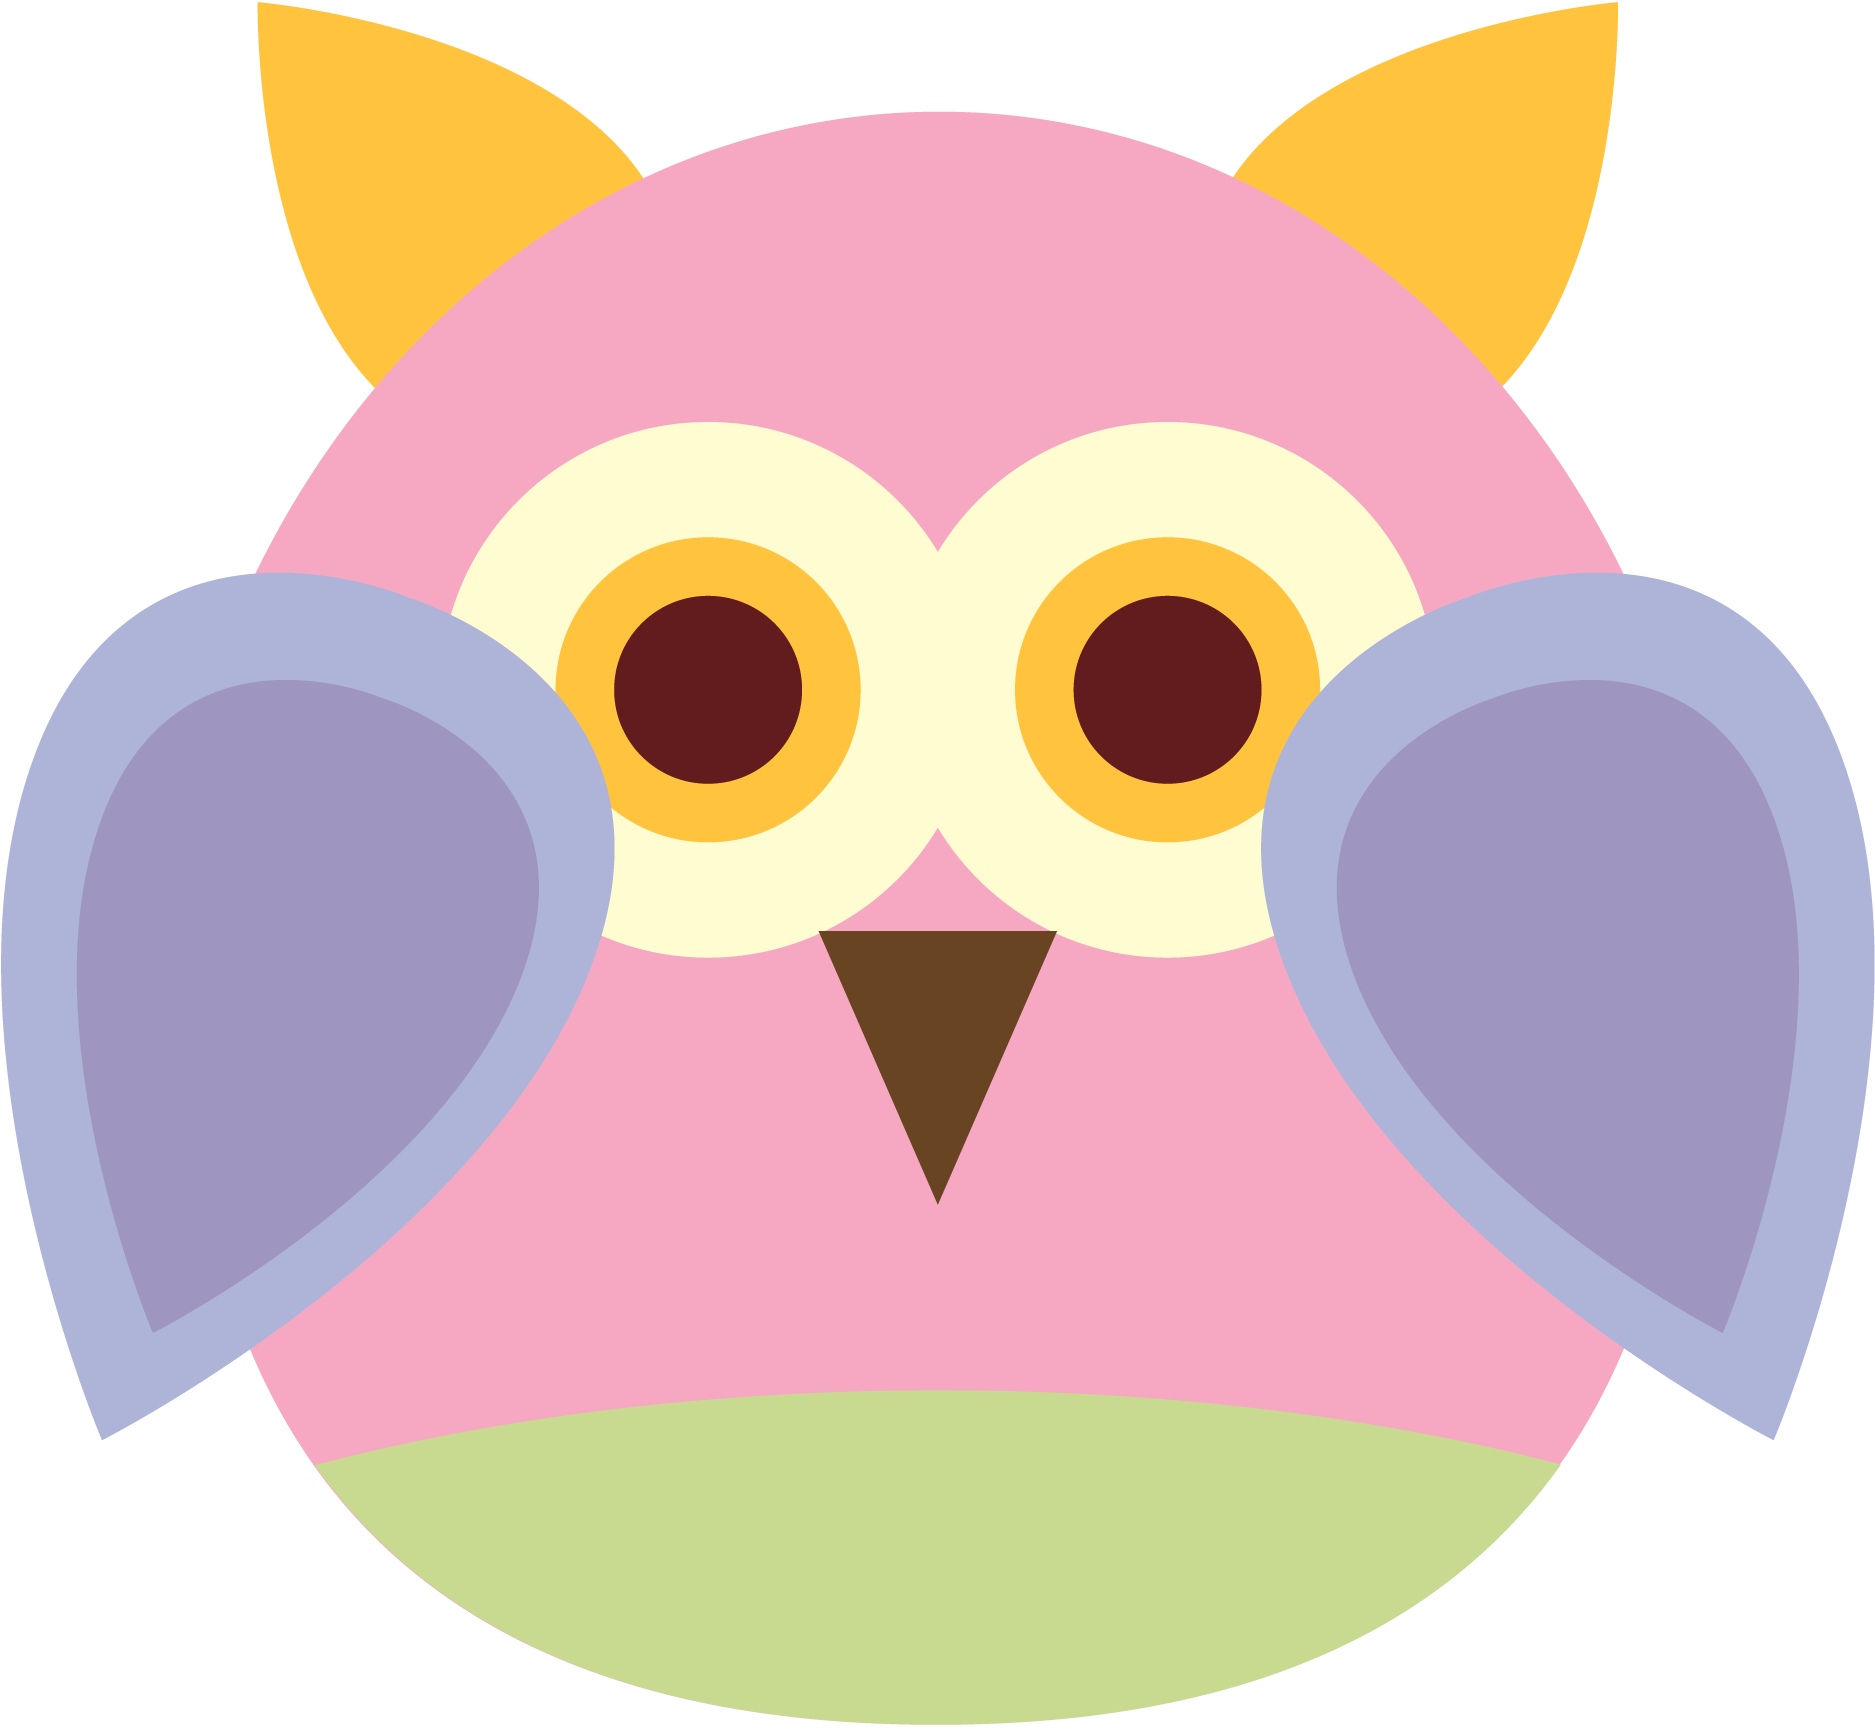 Cute Owl Clipart And It S Free Click On The Image To See It Larger